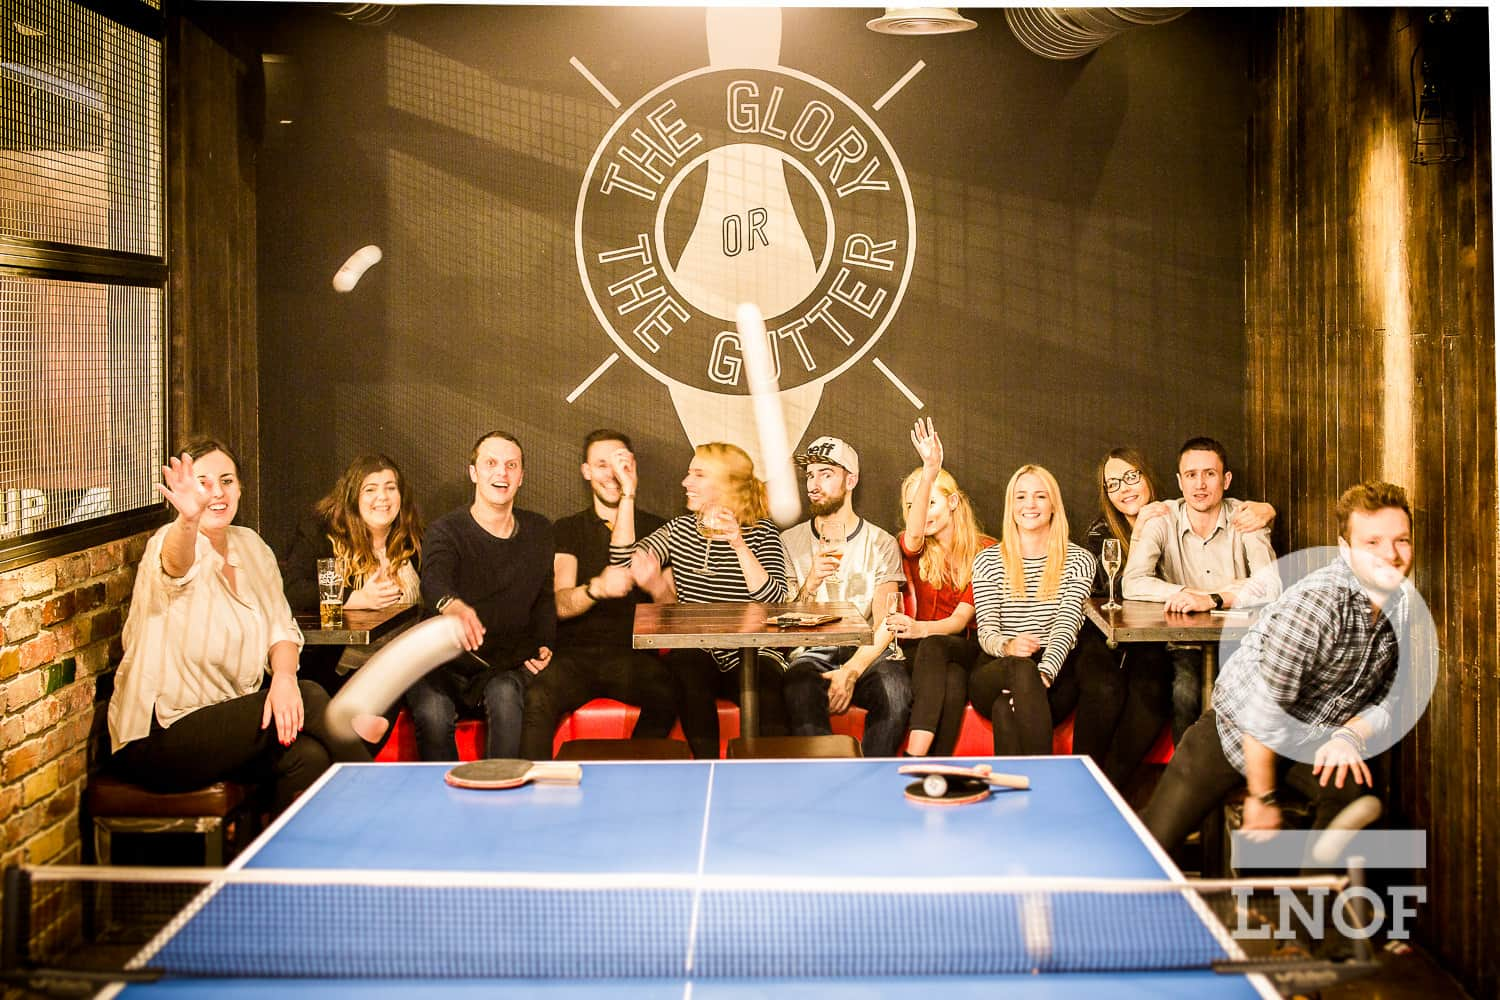 A group of young people throwing ping pong balls at the camera